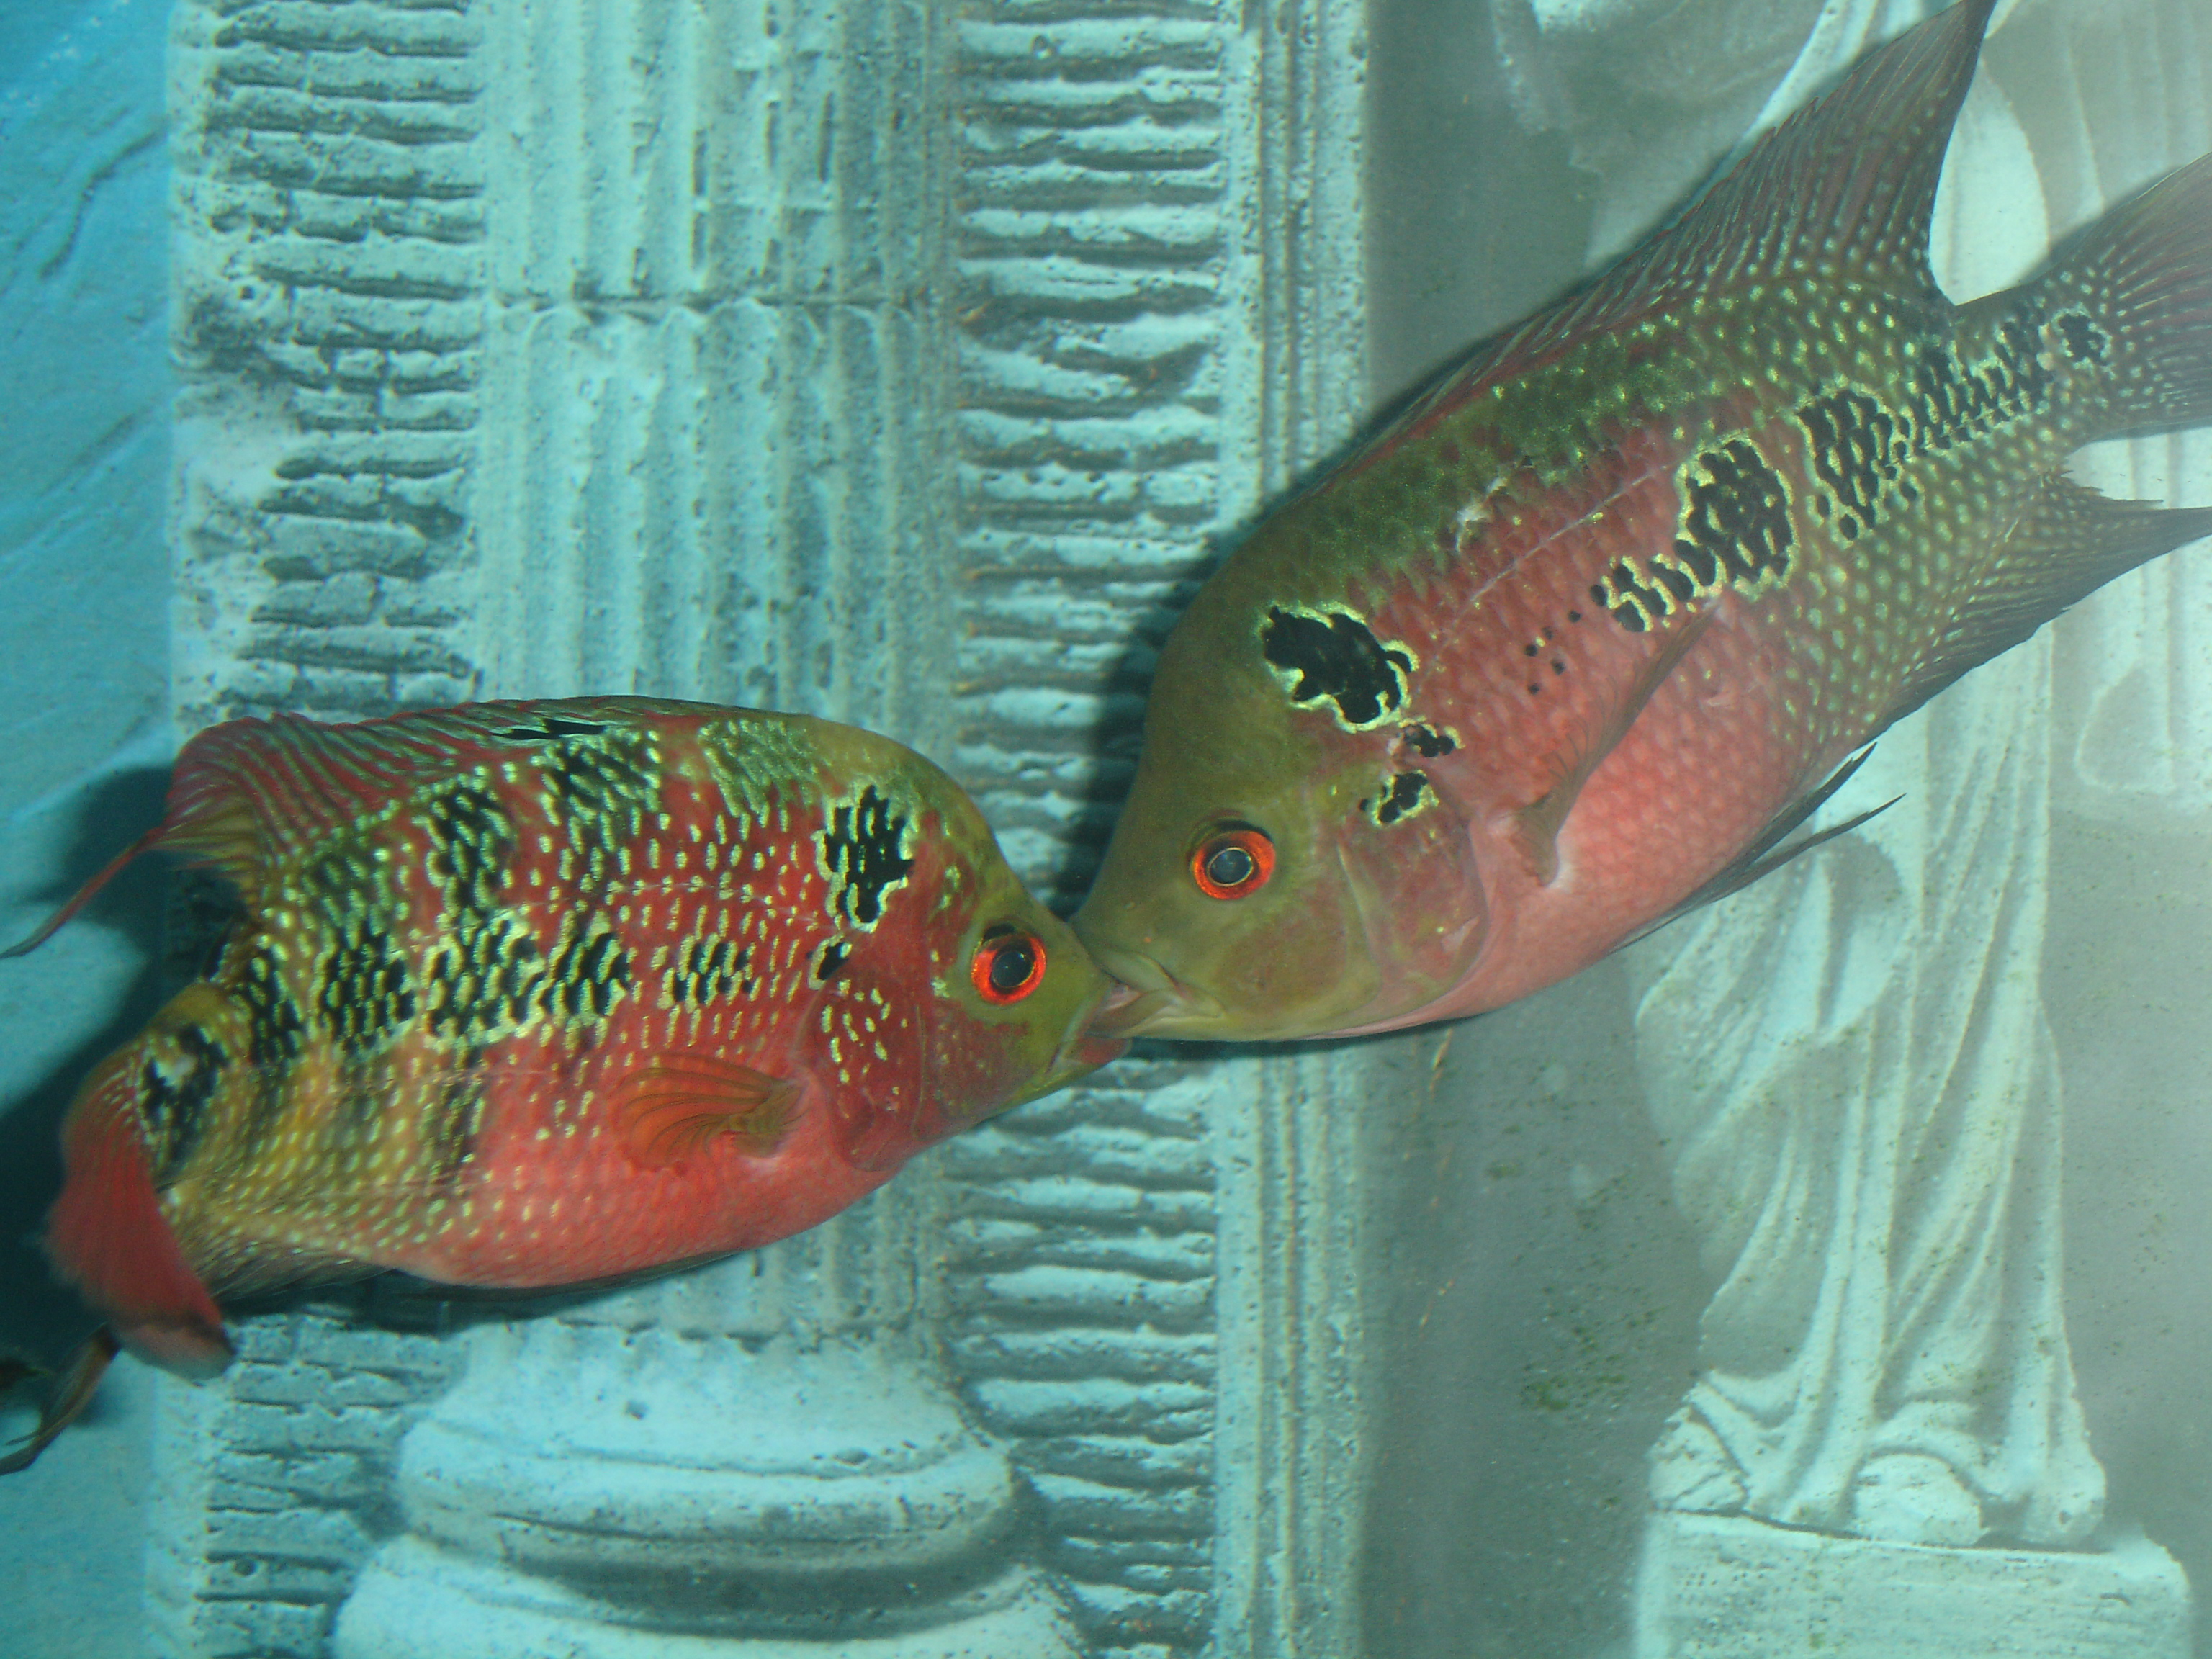 Images of Flowerhorn Breeding Male And Female - #rock-cafe